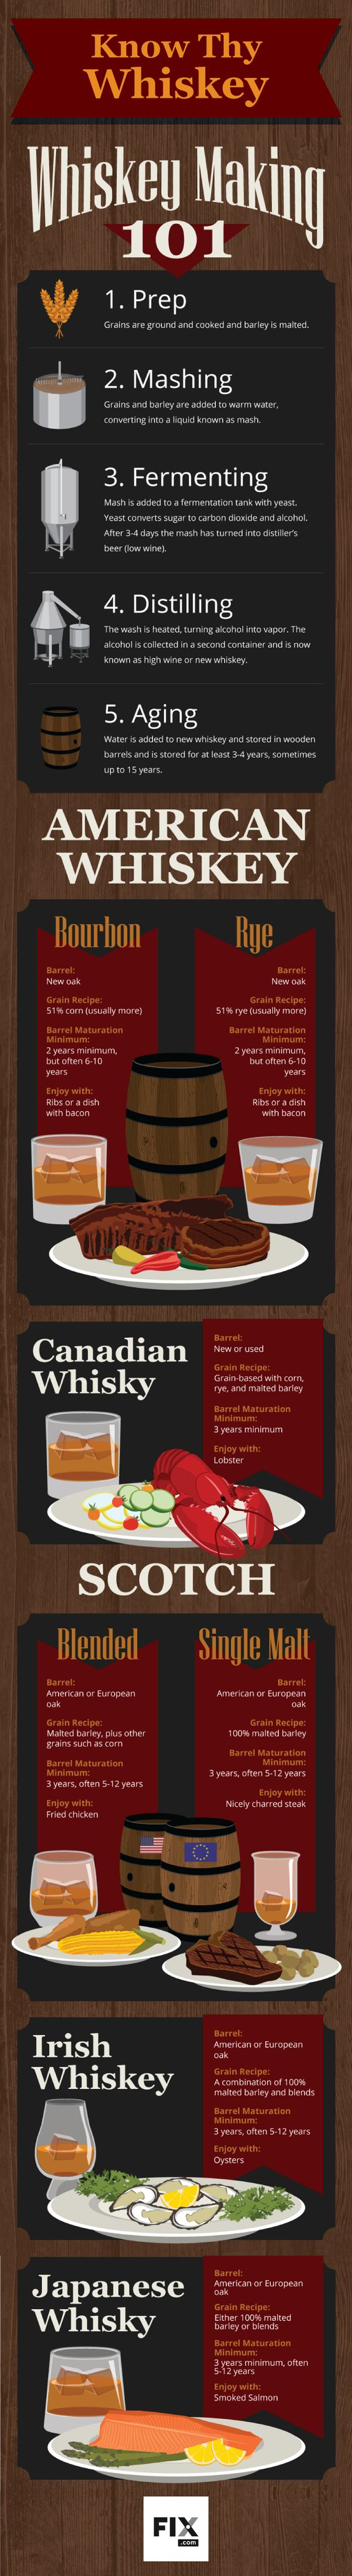 Know Thy Whiskey: Whiskey Making 101 #infographic #Food #Whiskey